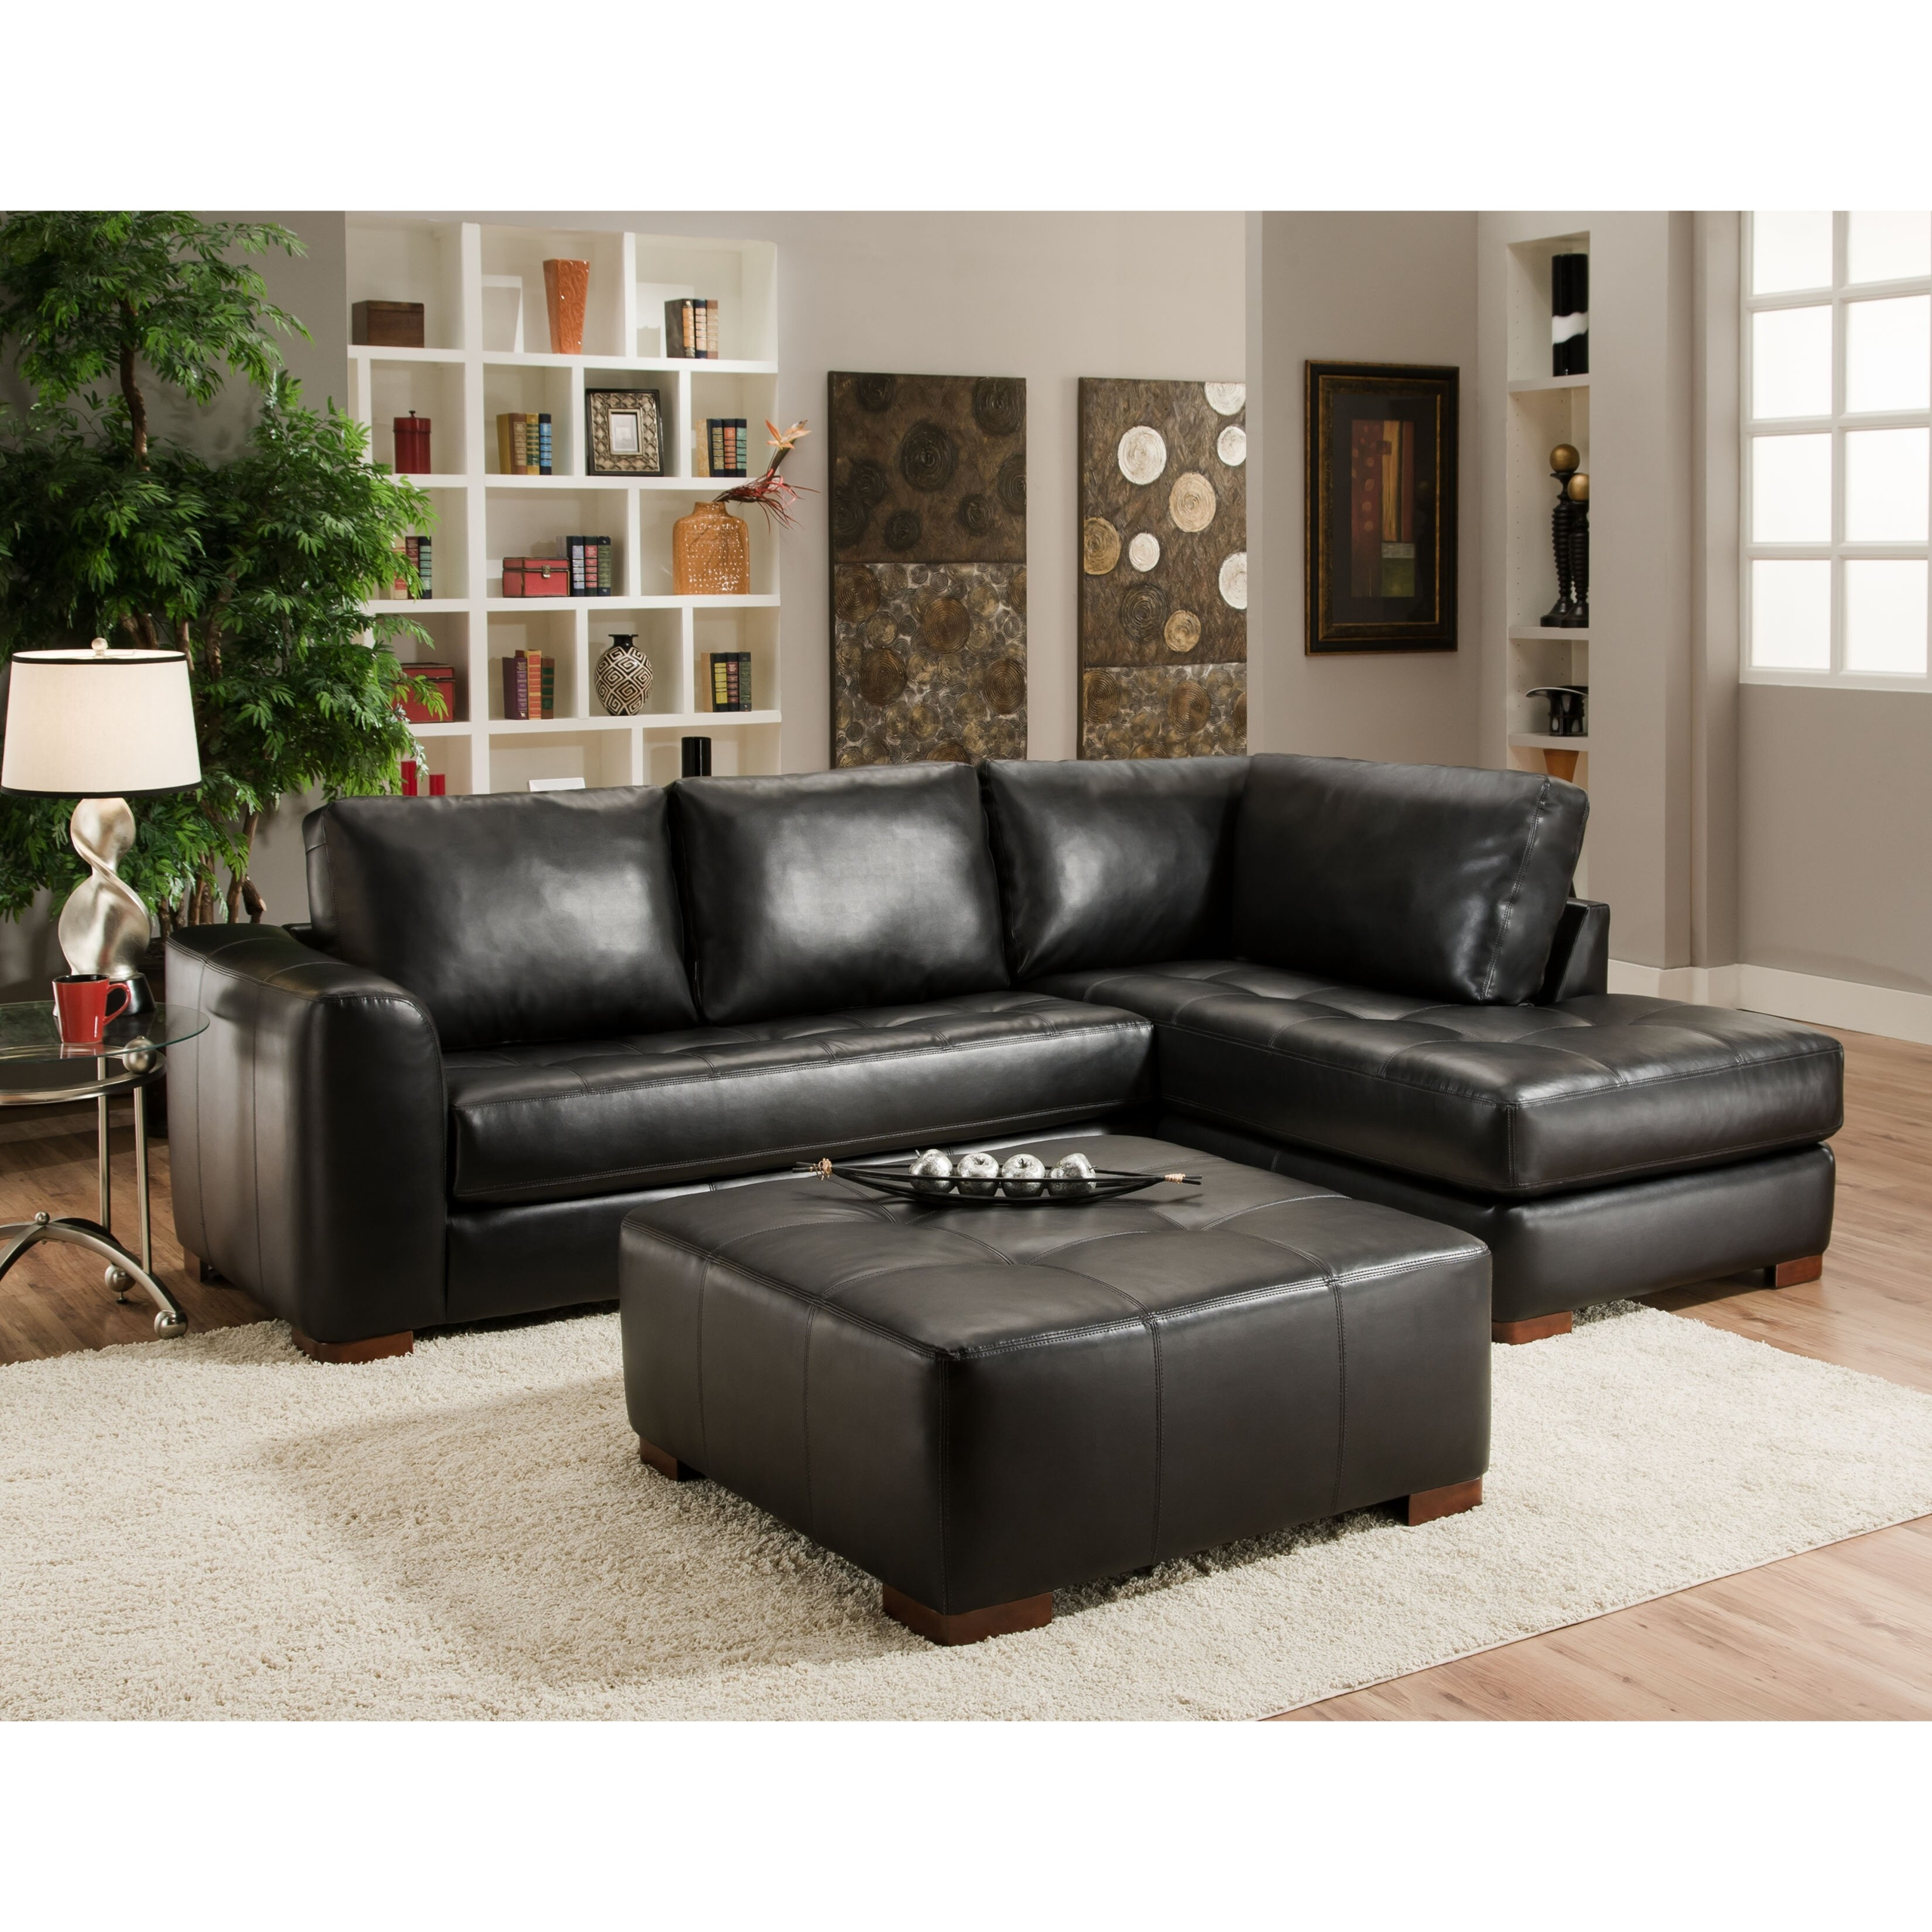 Beau Small Leather Sofa With Chaise